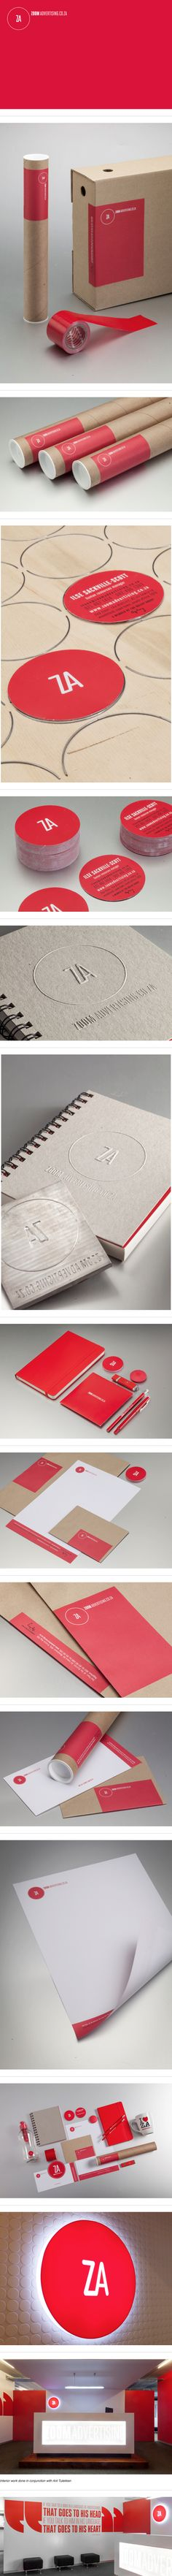 Za Agency Branding by Ben Johnston, via Behance #identity #packaging #branding #marketing PD